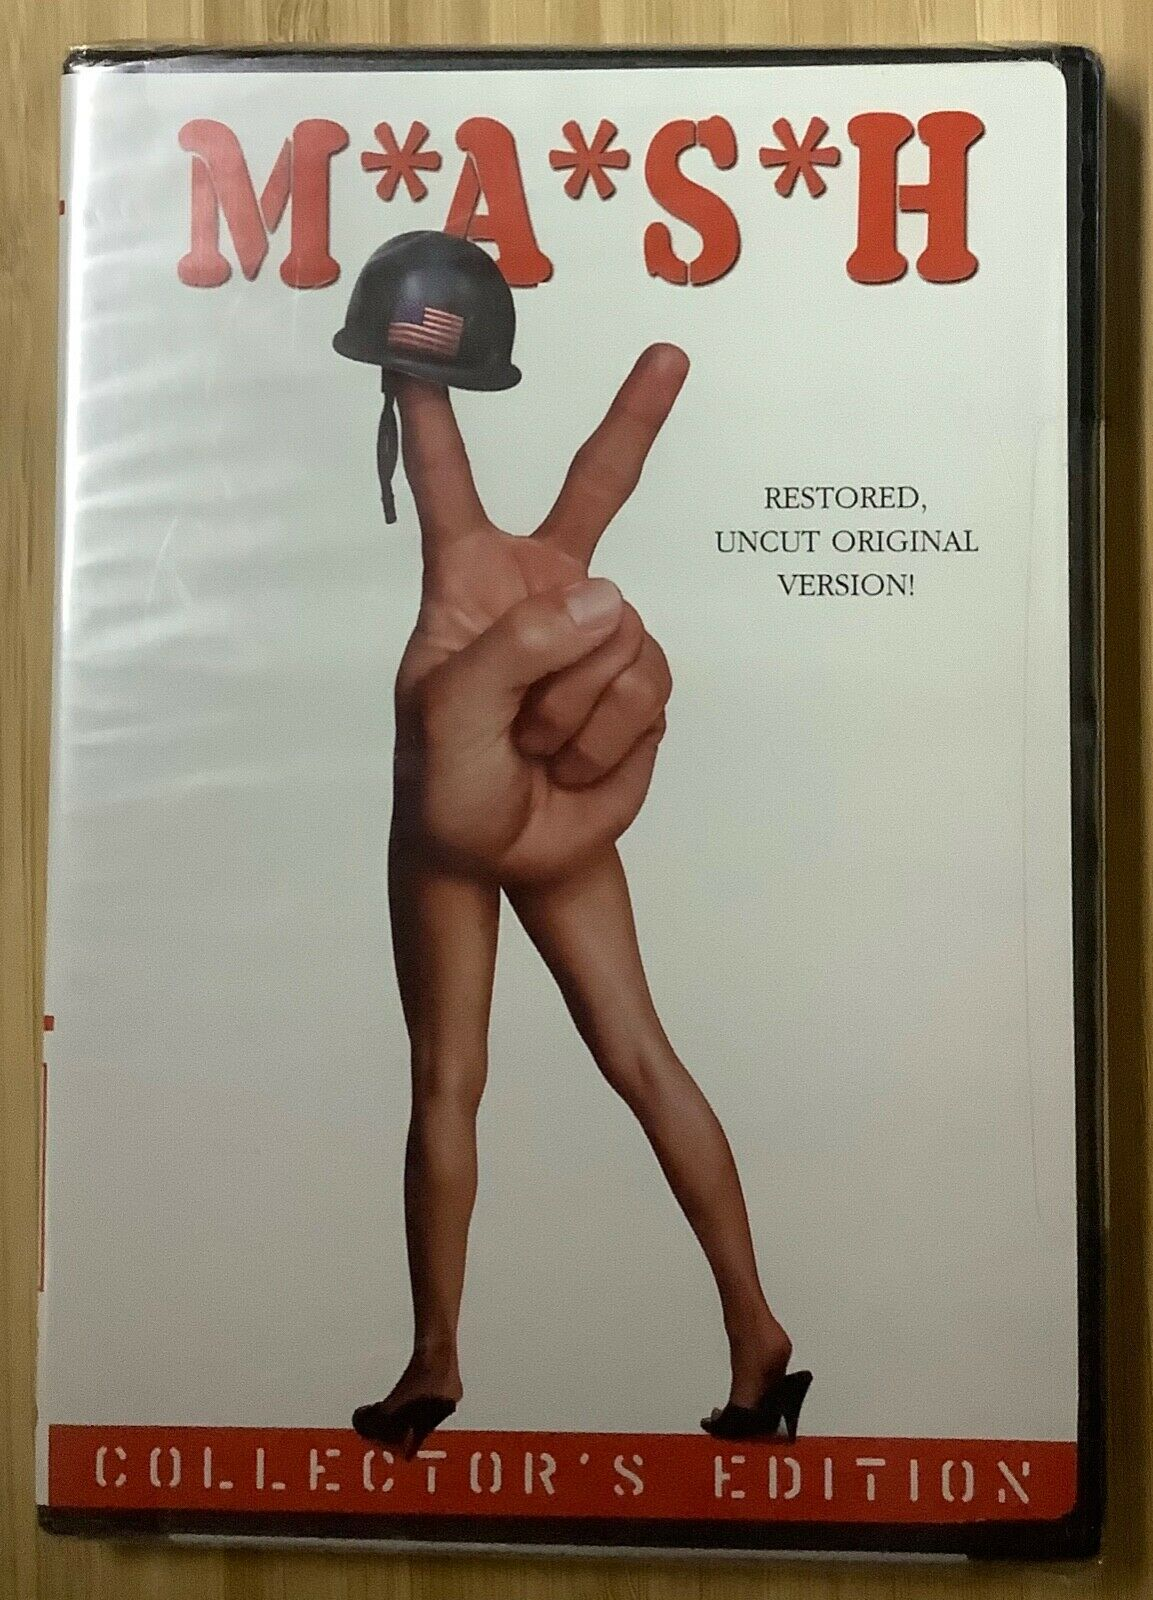 MASH 1970 DVD Elliott Gould Donald Sutherland Sally Kellerman 2-discs SEALED - $15.00